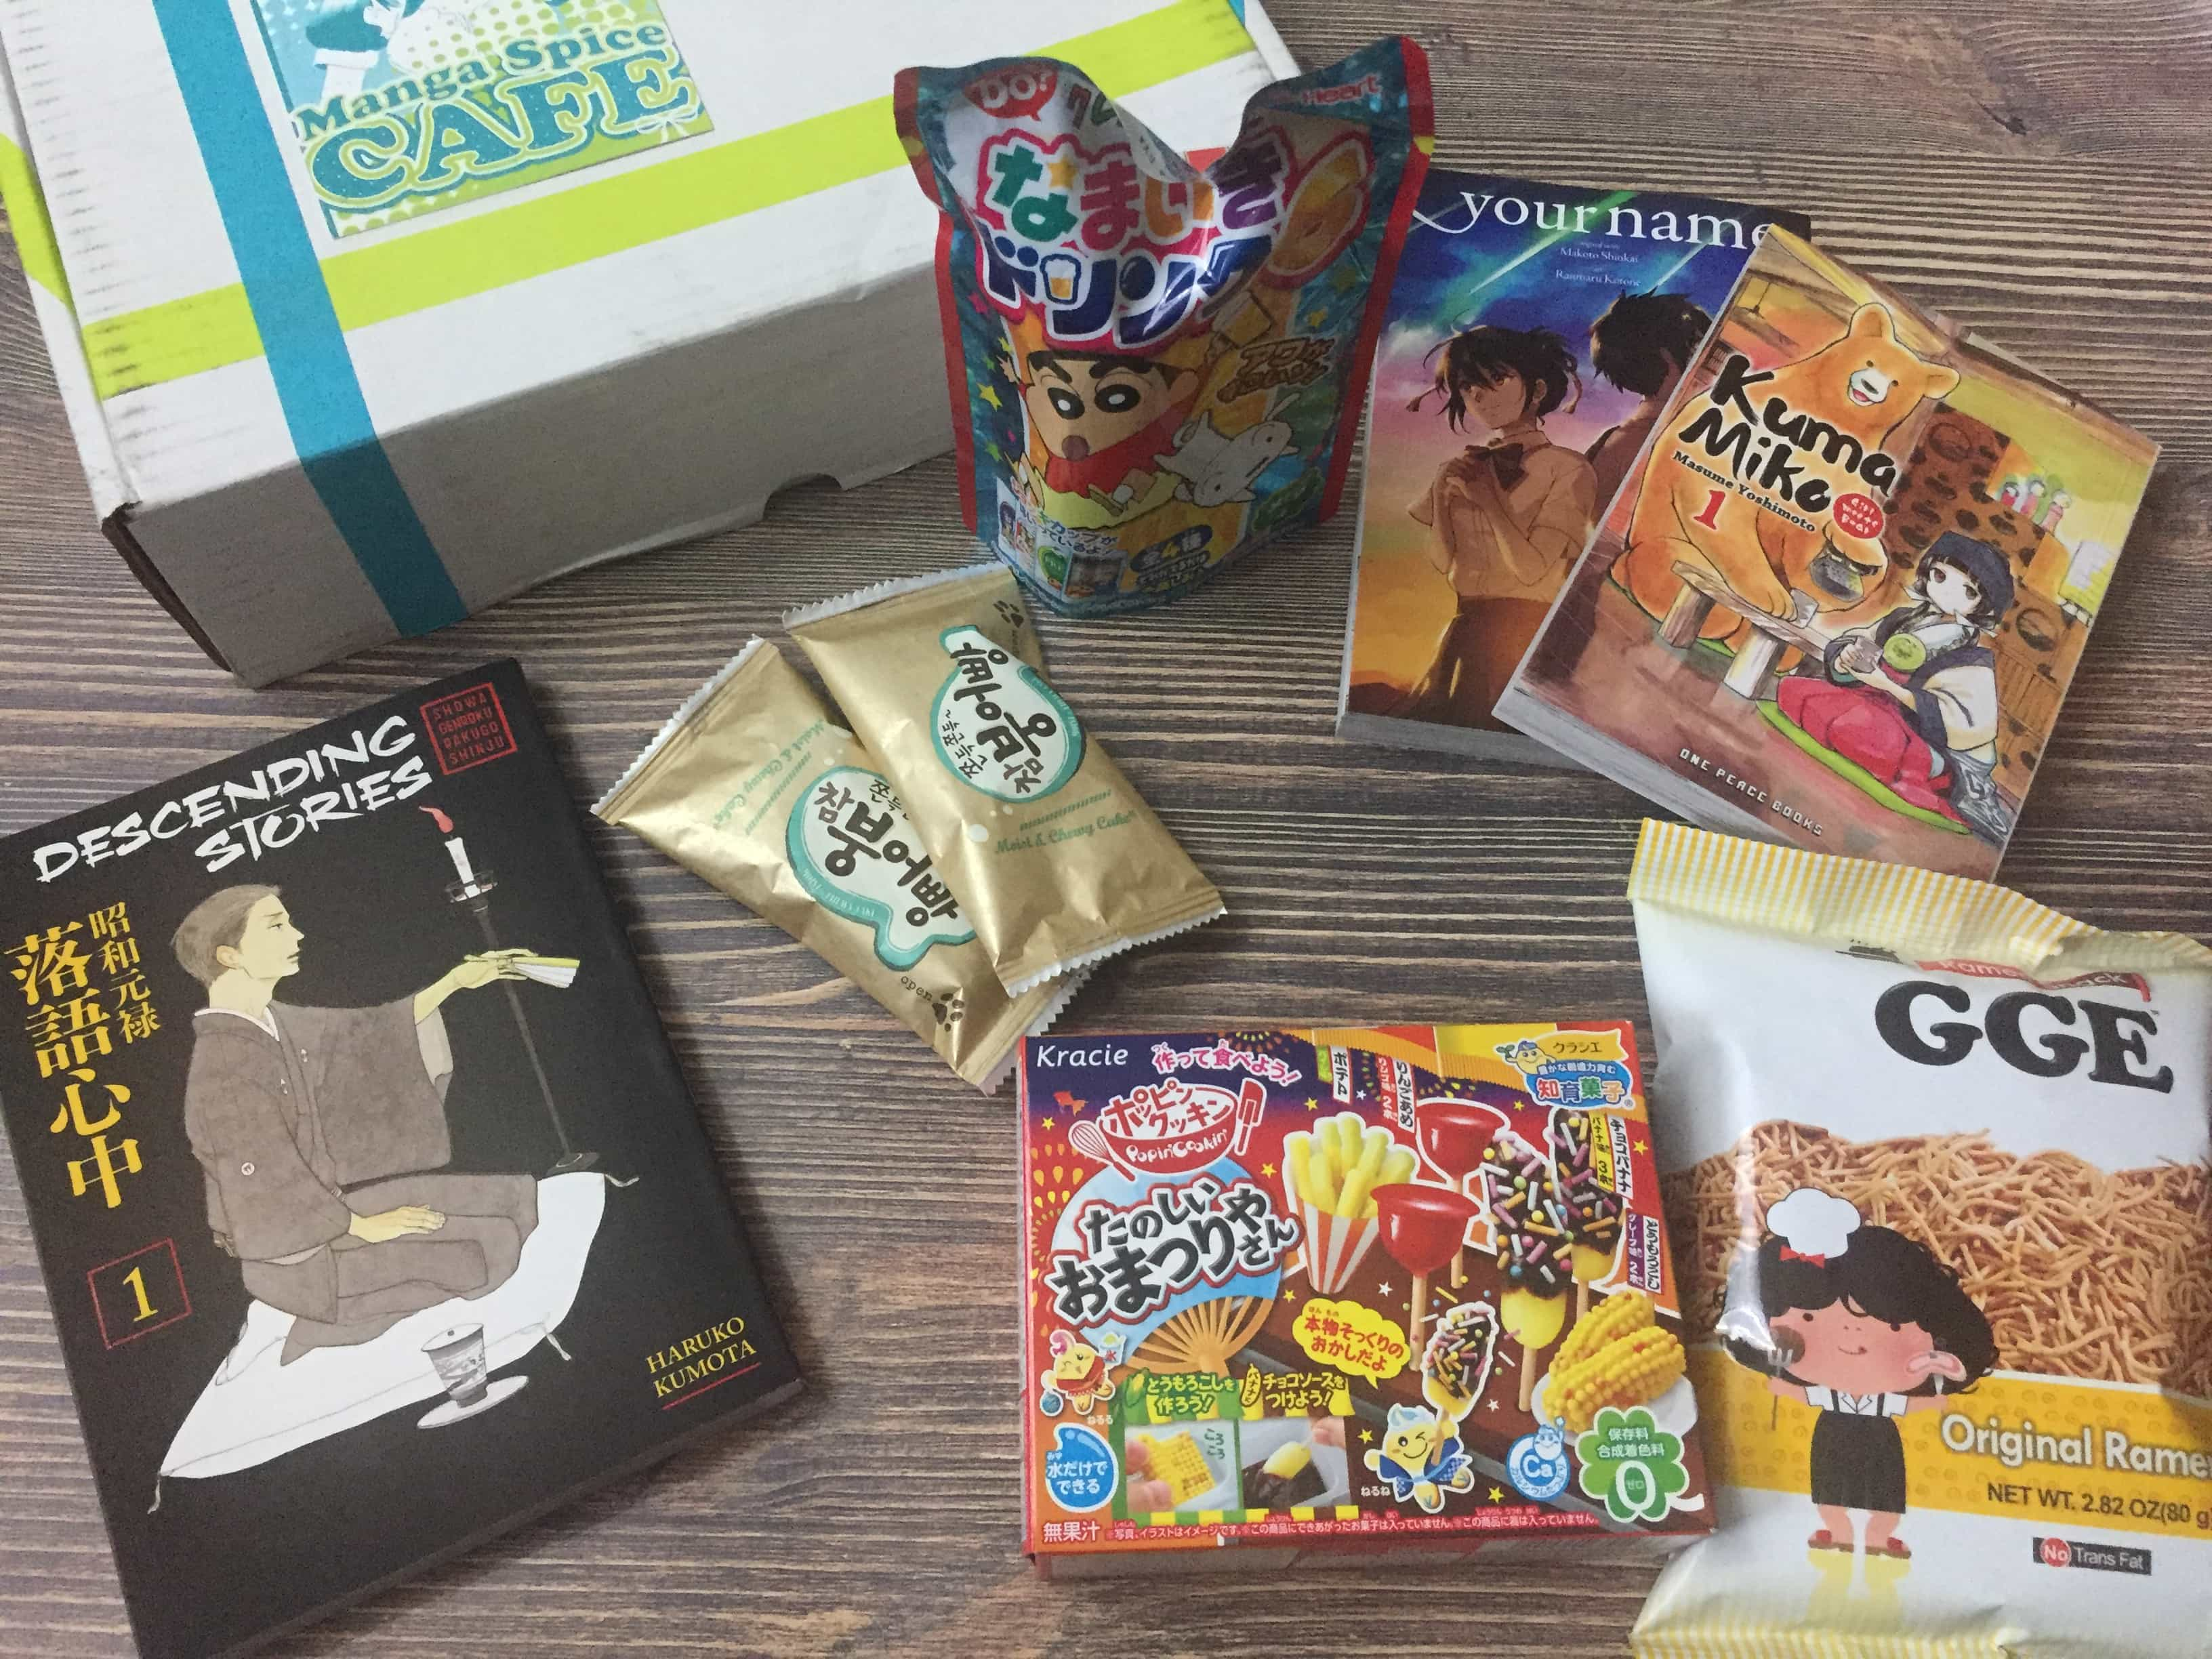 Manga Spice Cafe September 2017 Subscription Box Review